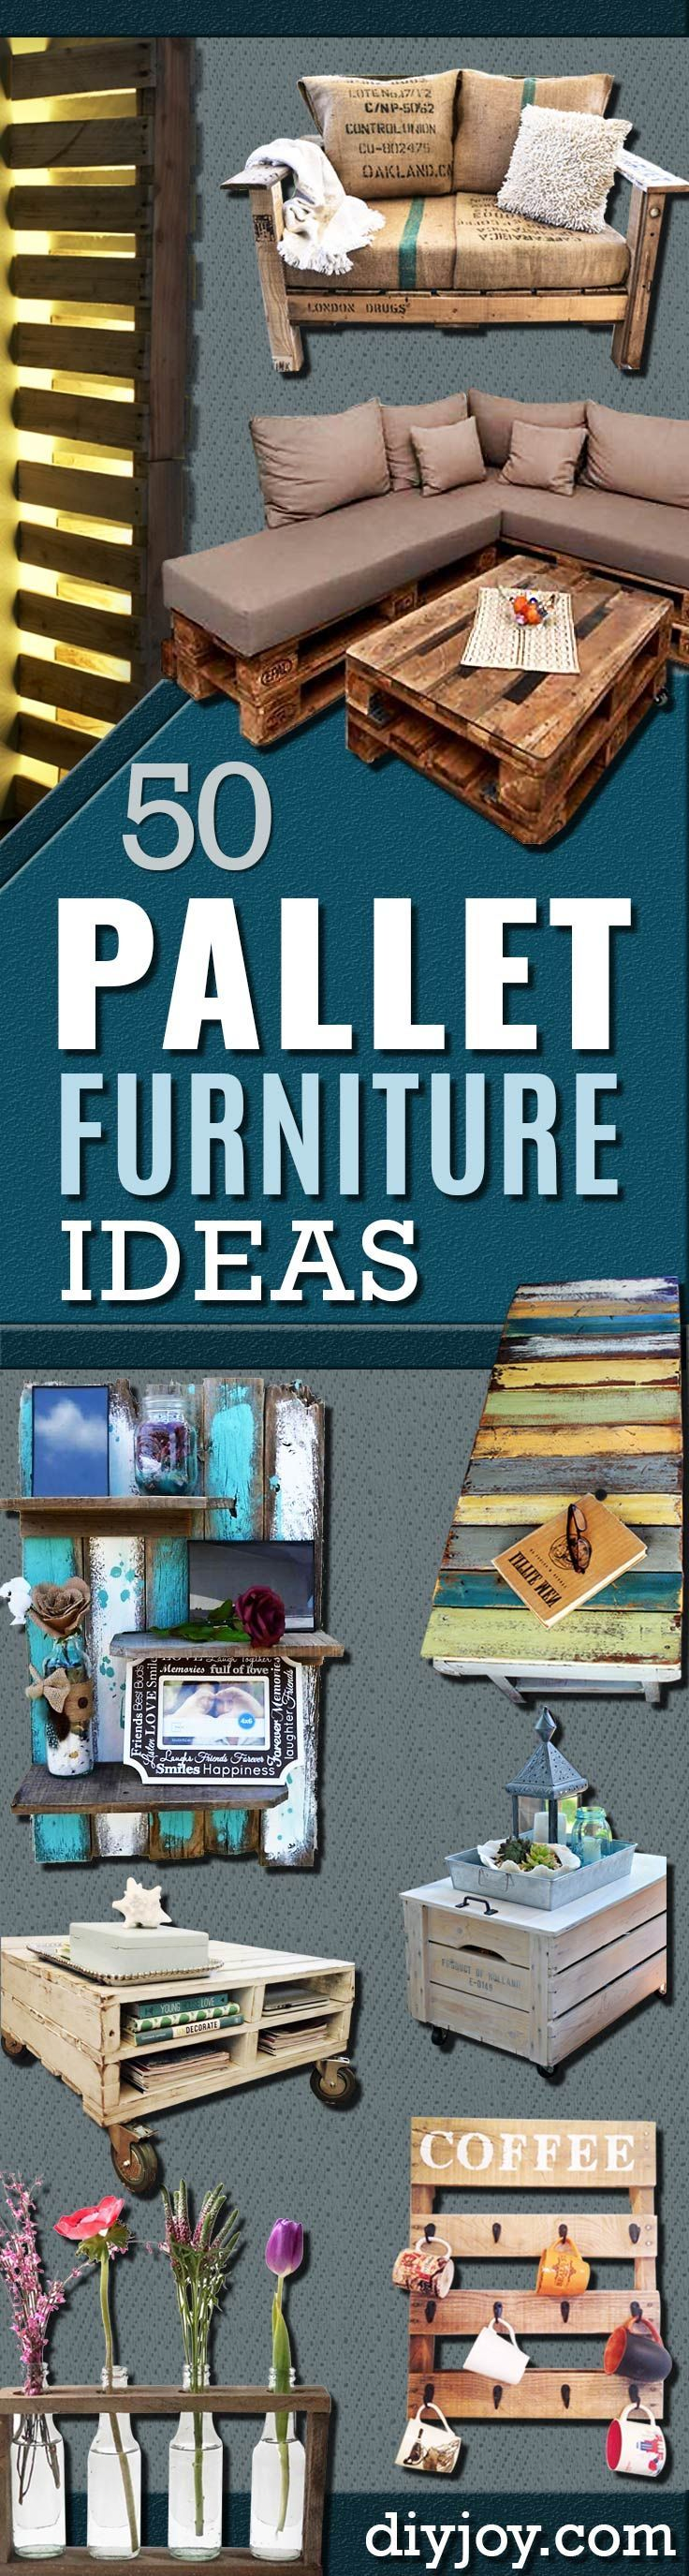 DIY Pallet Furniture Ideas - Best Do It Yourself Projects Made With Wooden Pallets - Indoor and Outdoor, Bedroom, Living Room, Patio. Coffee Table, Couch, Dining Tables, Shelves, Racks and Benches http://diyjoy.com/diy-pallet-furniture-projects